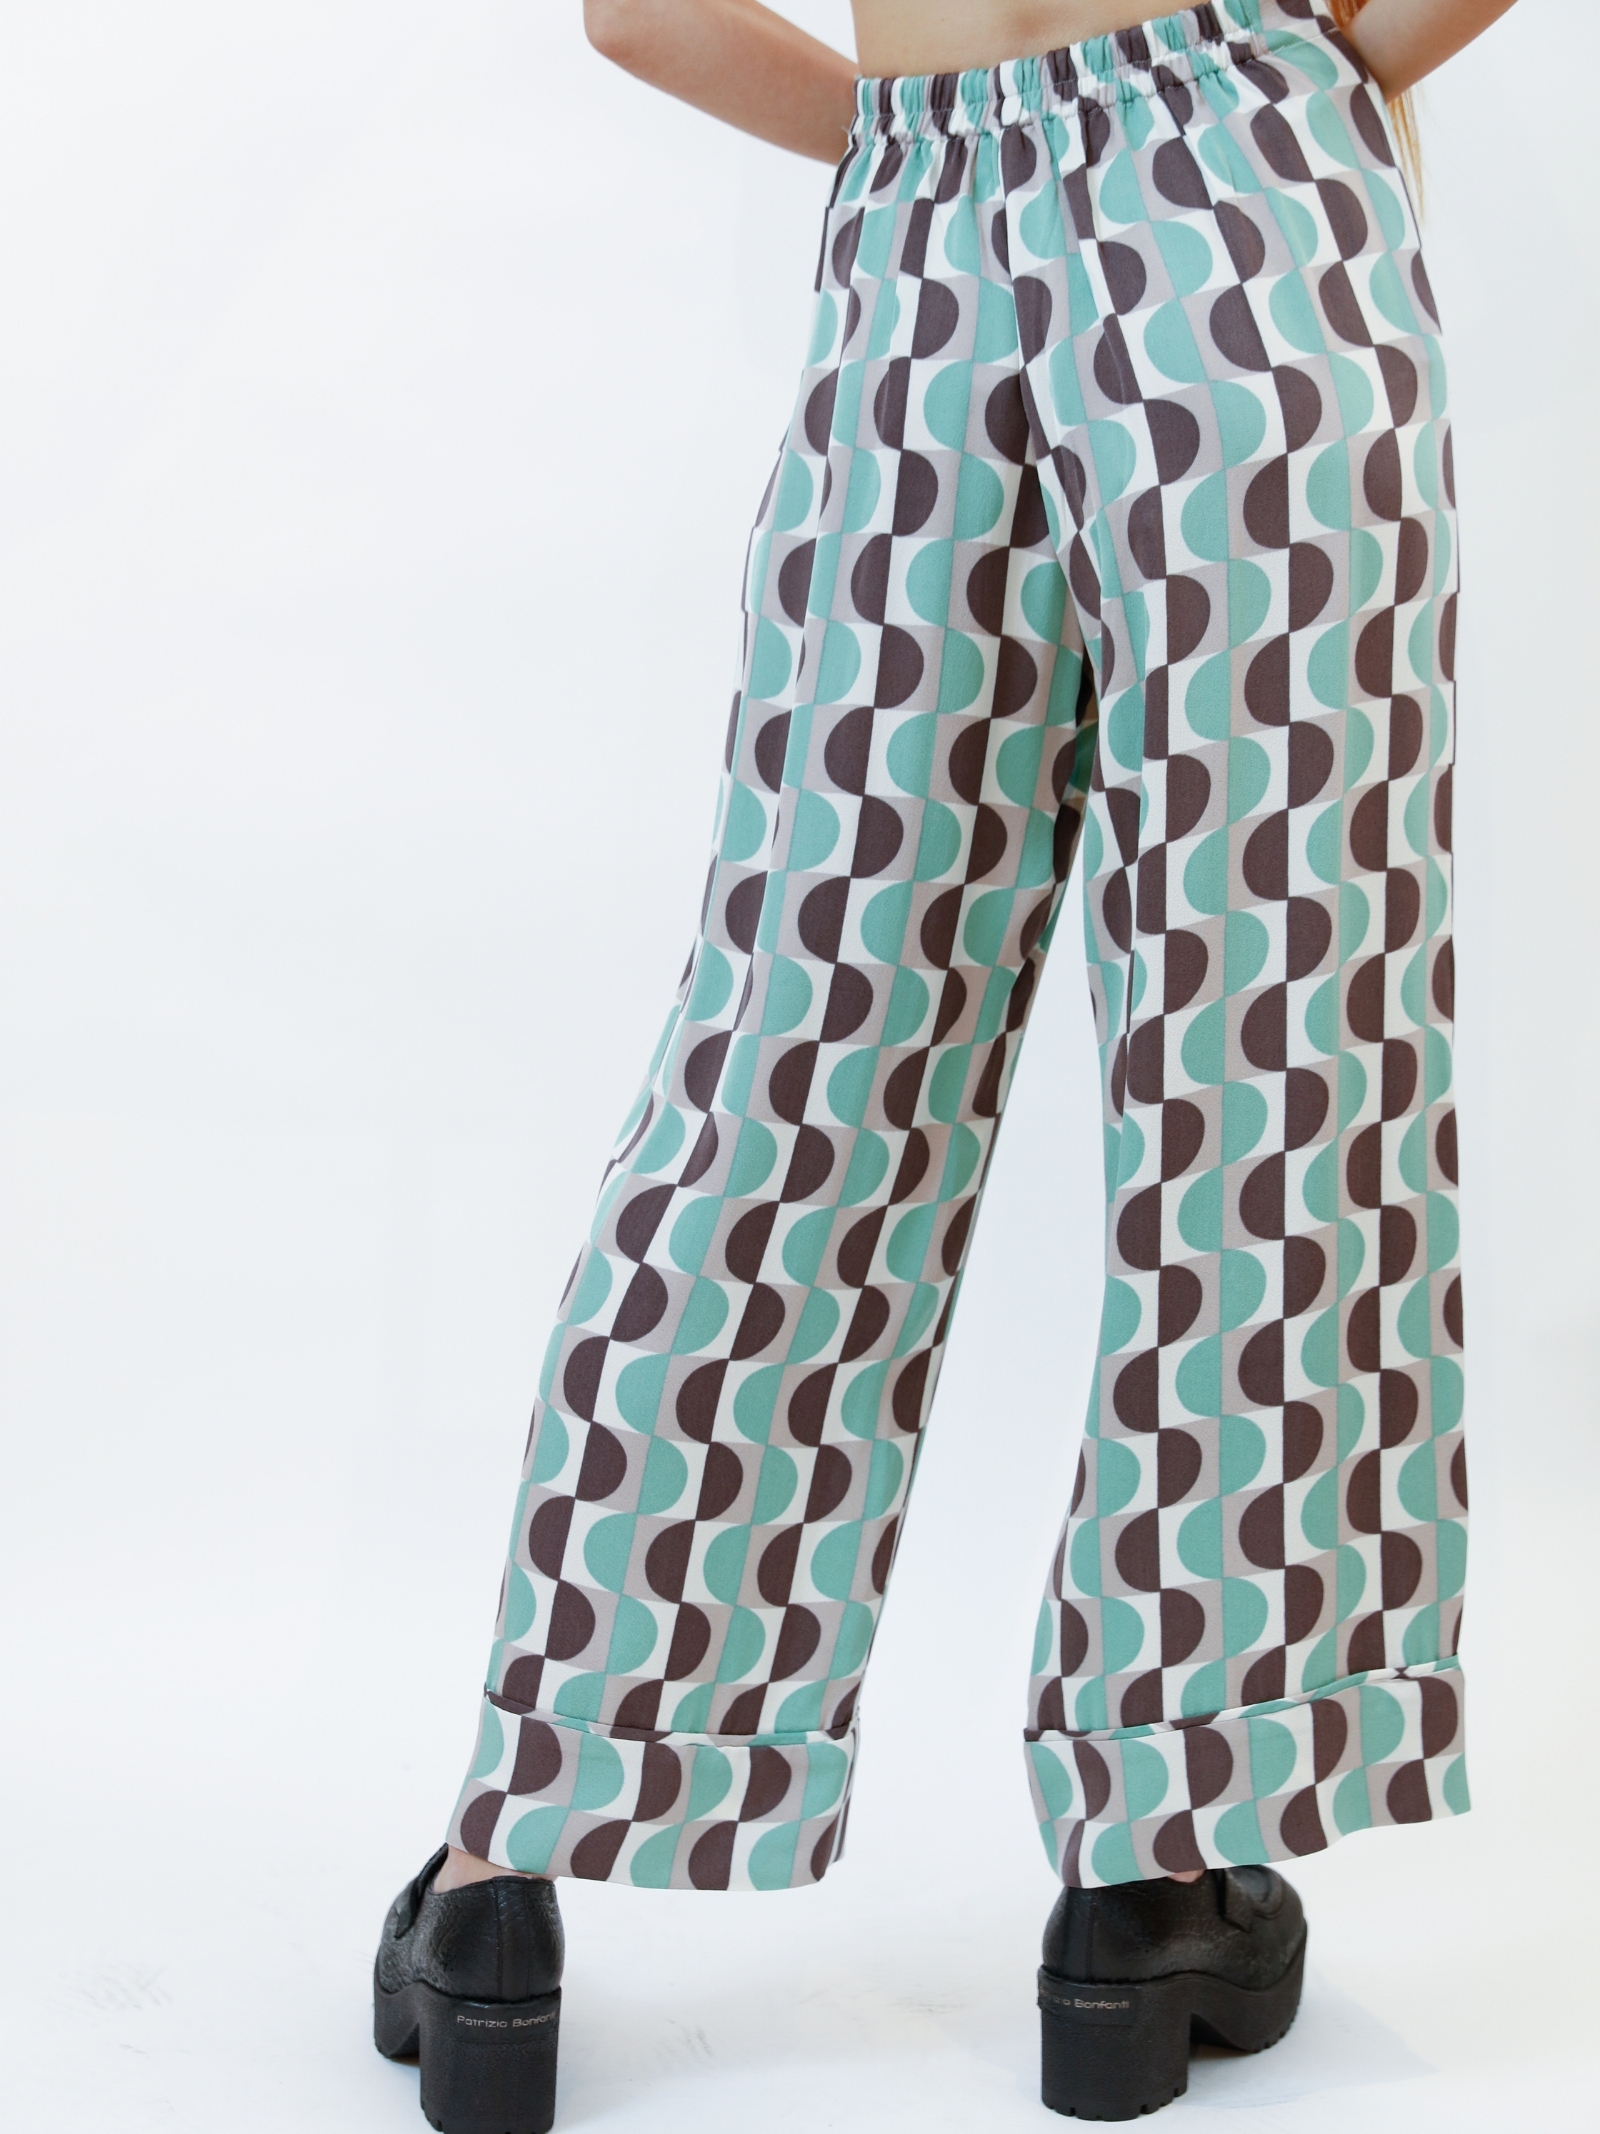 Women's Clothing Trousers Roundgr in Aqua Green Printed Sablè with Flounce at the Bottom Maliparmi | Skirts and Pants | JH739950568C6040